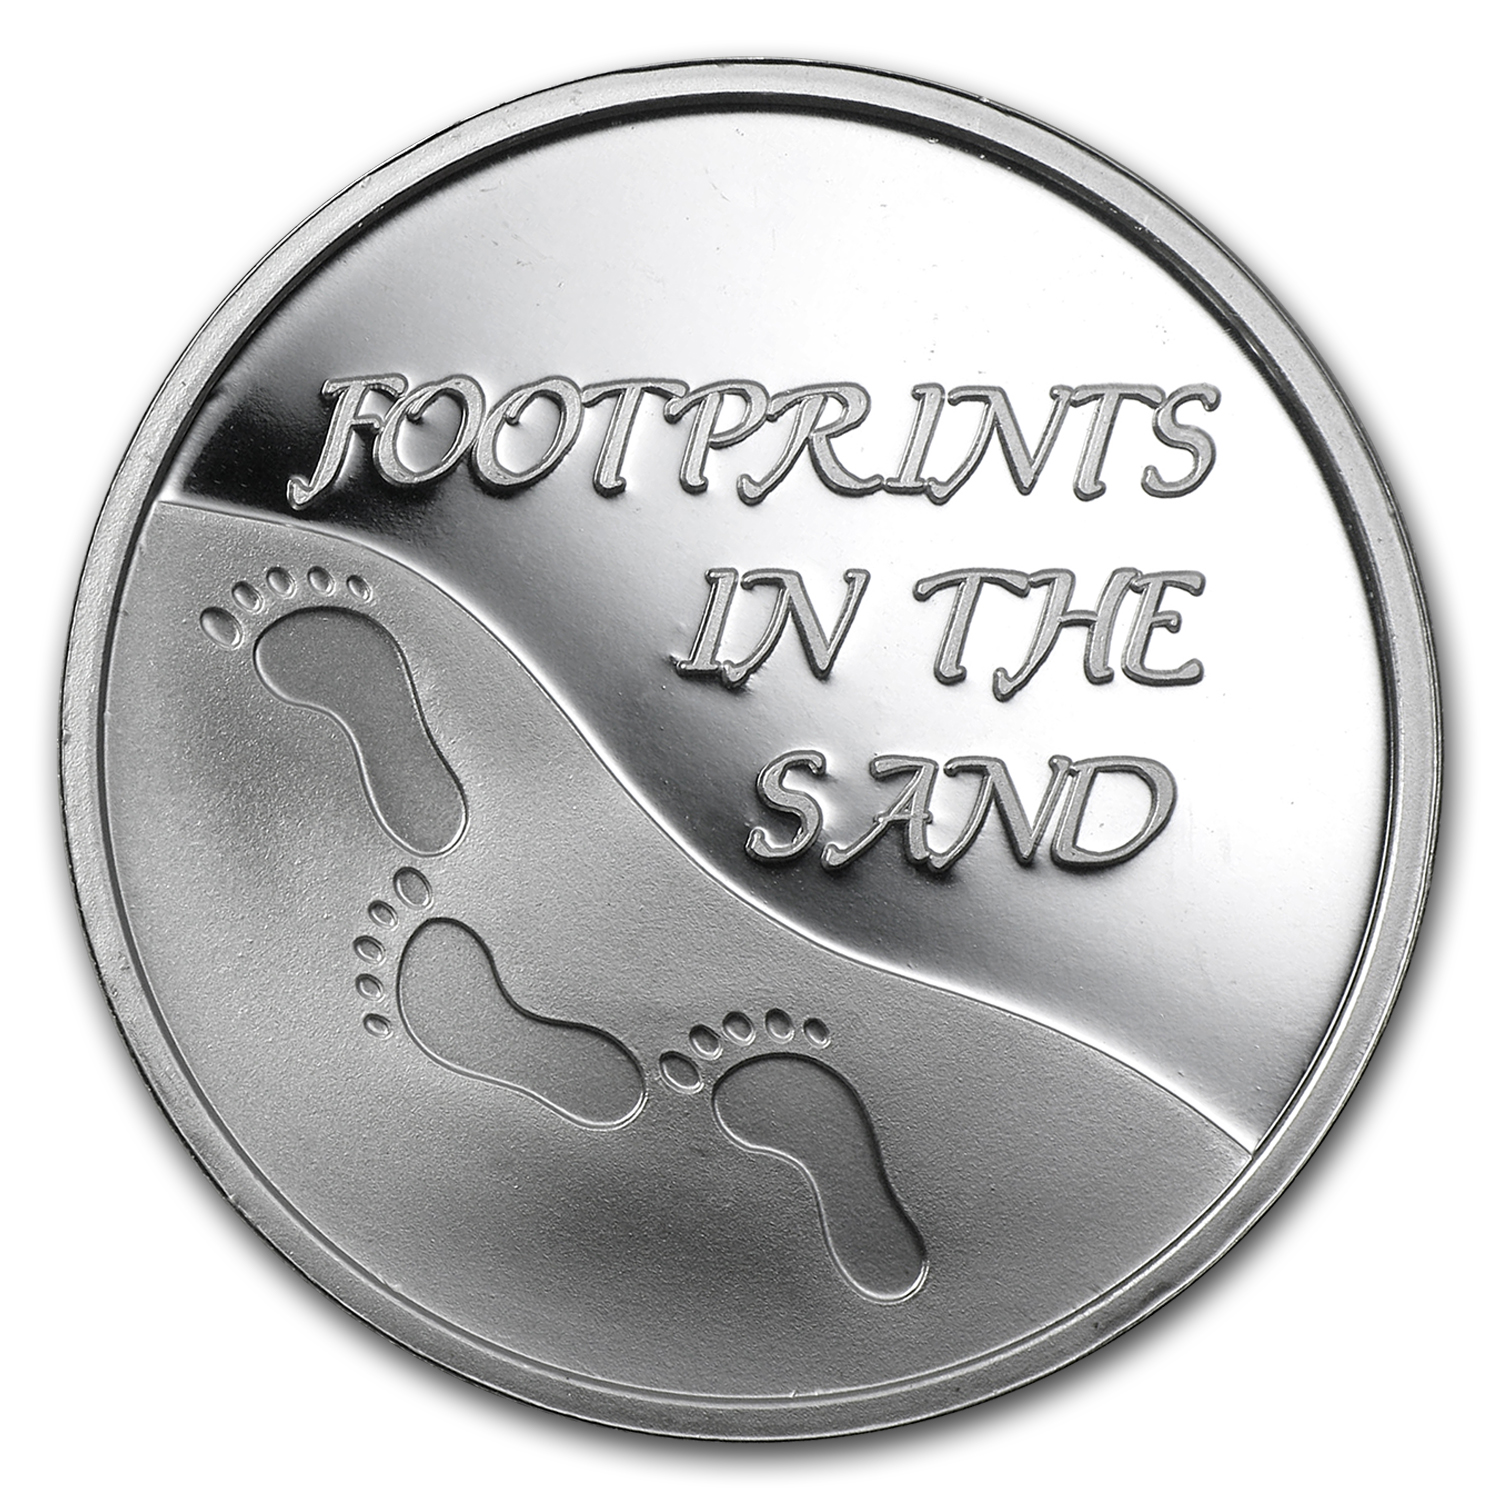 1 oz Silver Round - Footprints in the Sand